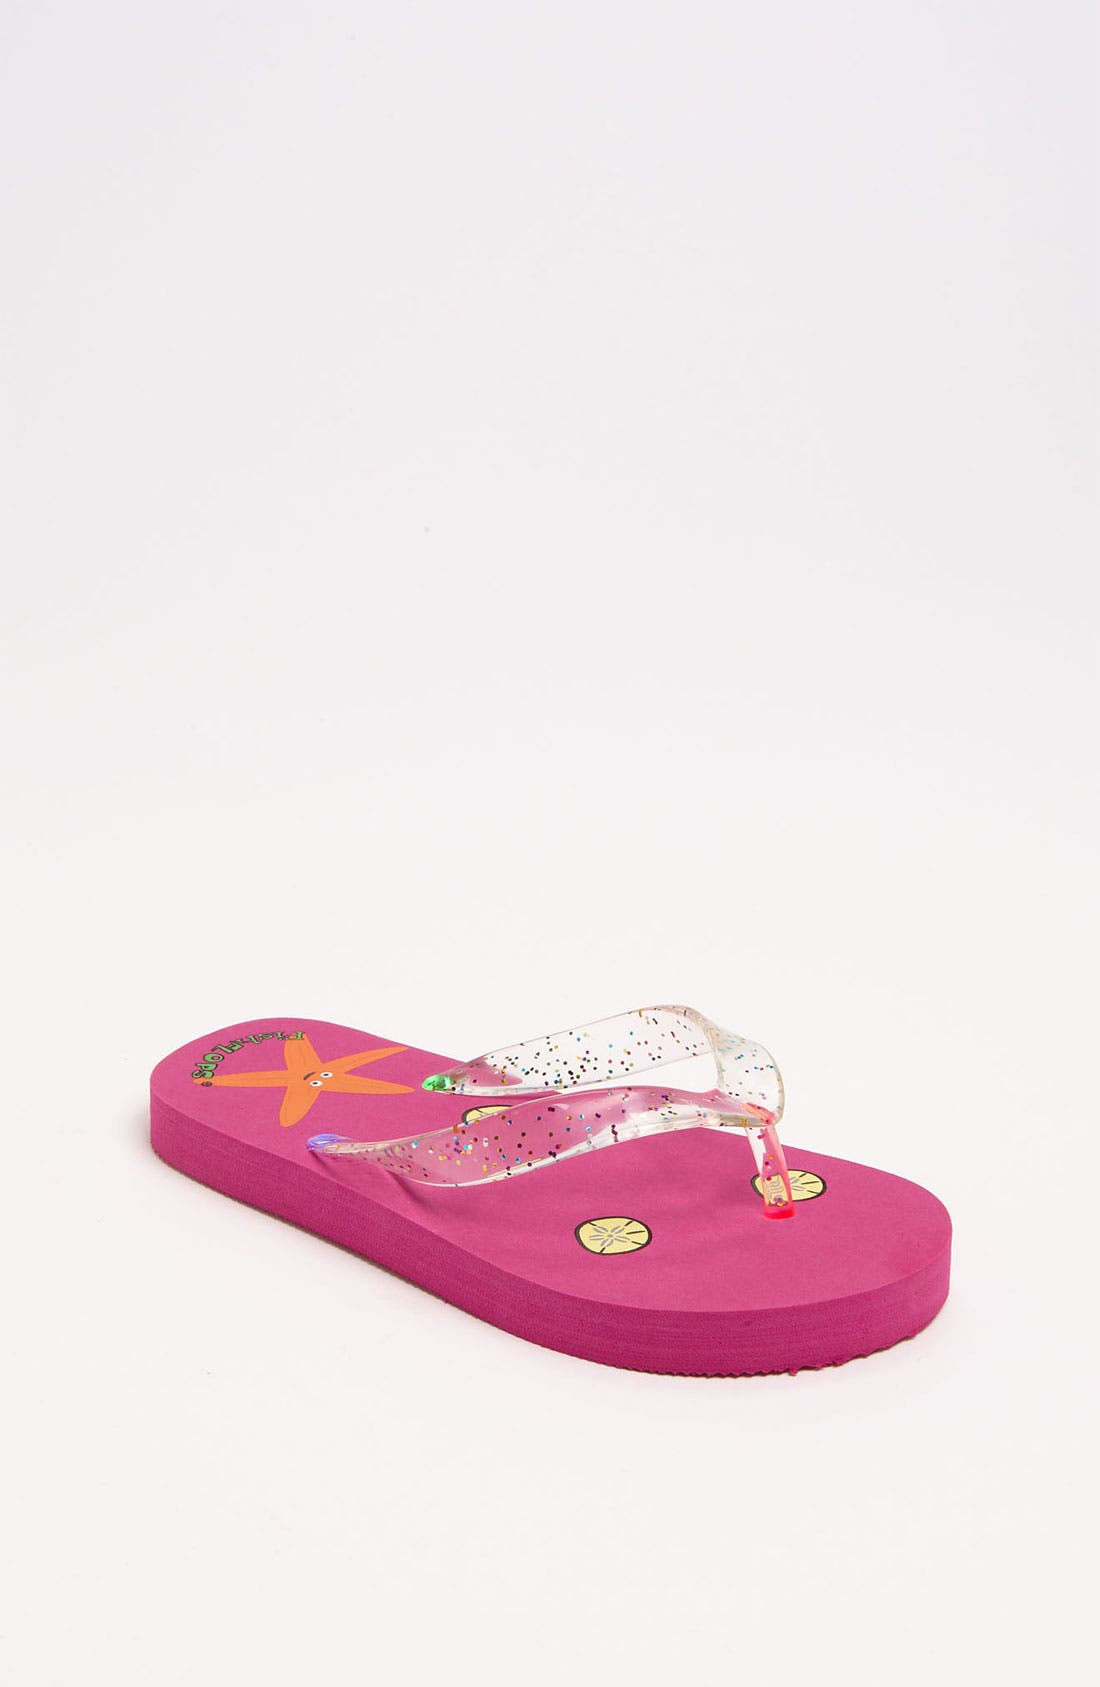 Alternate Image 1 Selected - Fish Flops 'Starfish Lights' Flip Flops (Toddler & Little Kid)